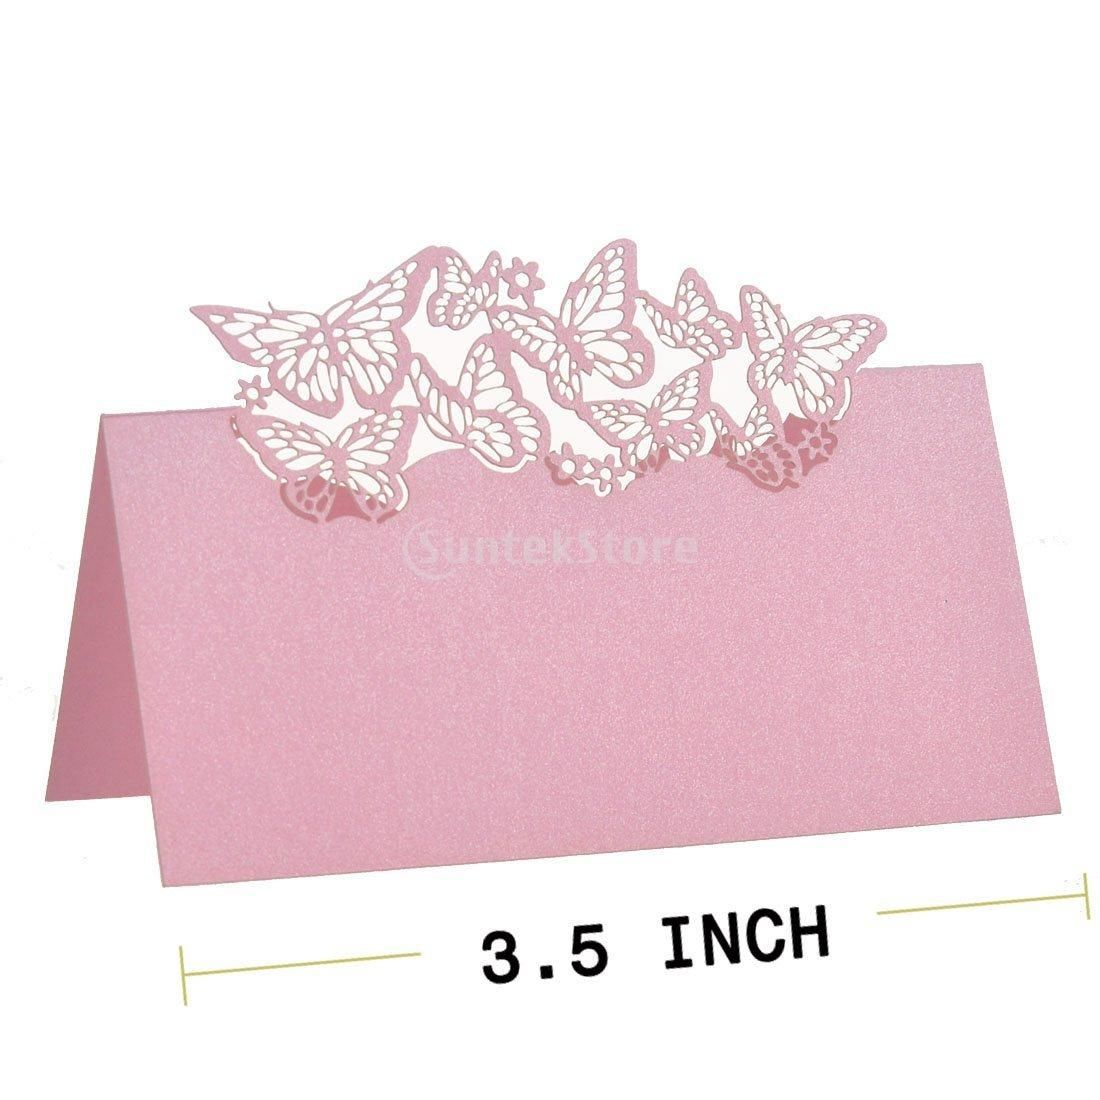 Cheap Card Stock For Business Cards Buy Quality Card Origami